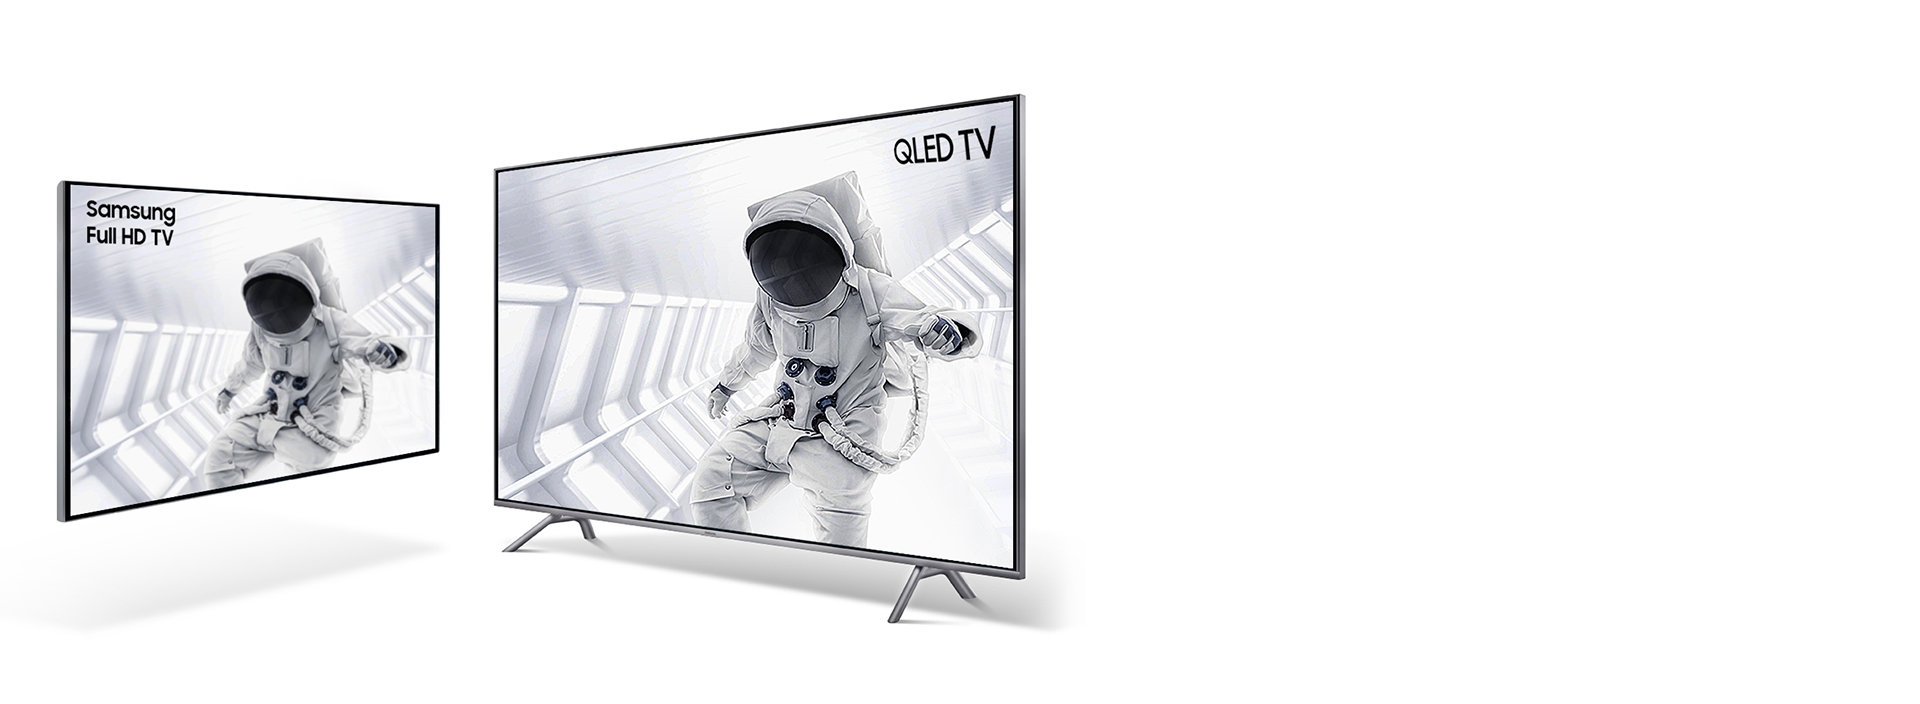 Astronaut images to explain Q HDR. Samsung QLED TV's image on the left. And Other TV's image on the right. Samsung QLED TVs image looks more vibrant and with details than other TV's image. You can see the details of interiors of space ship and spacesuits.